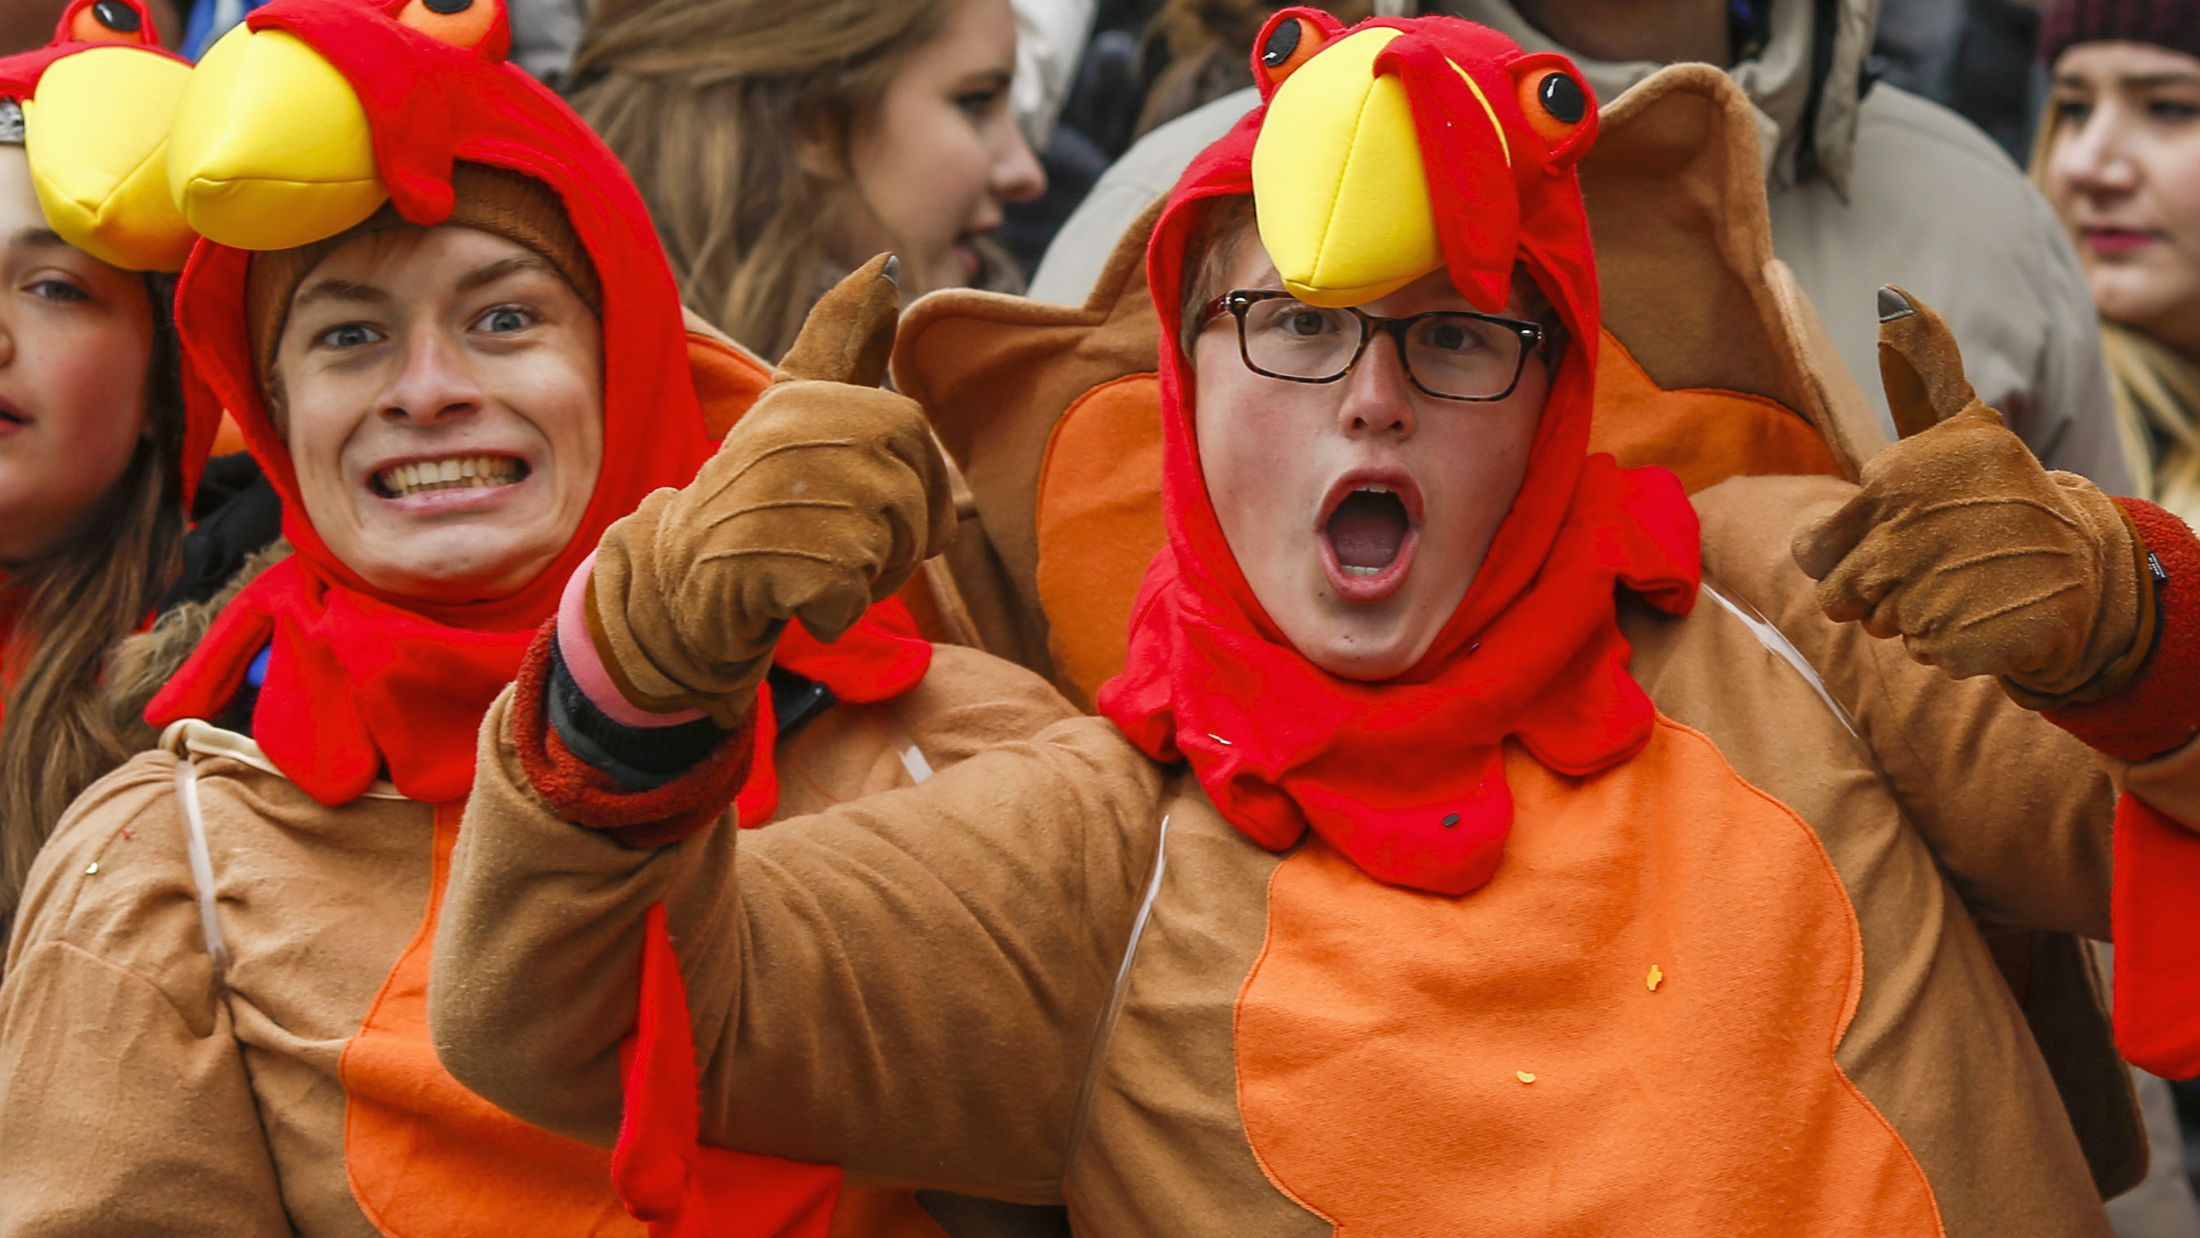 People react as they watch the 88th Macy's Thanksgiving Day Parade in New York November 27, 2014.